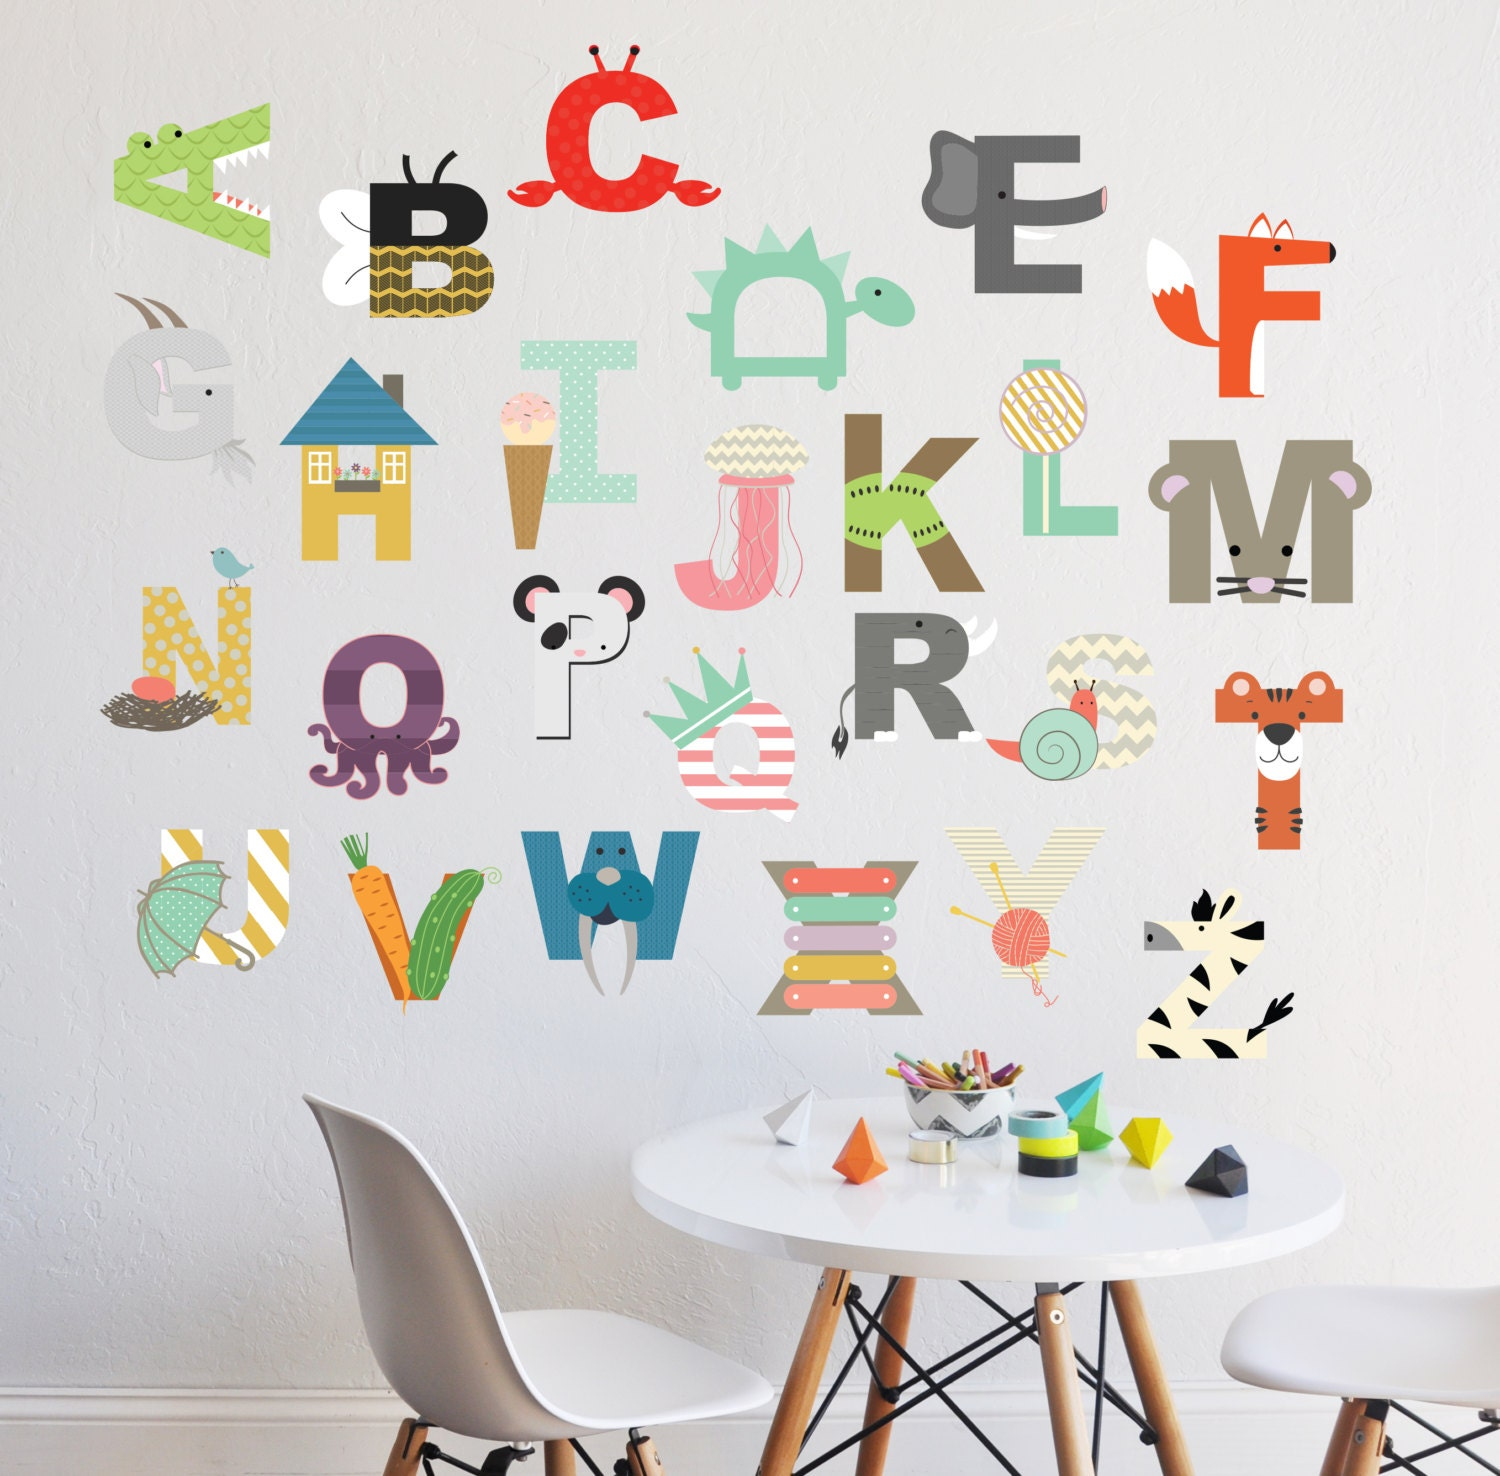 Alphabet Wall Decor Alphabet Wall Decal Interactive Stick On Diy Crafts D Canvas Alphabet Wall Art Room Decor For Kids